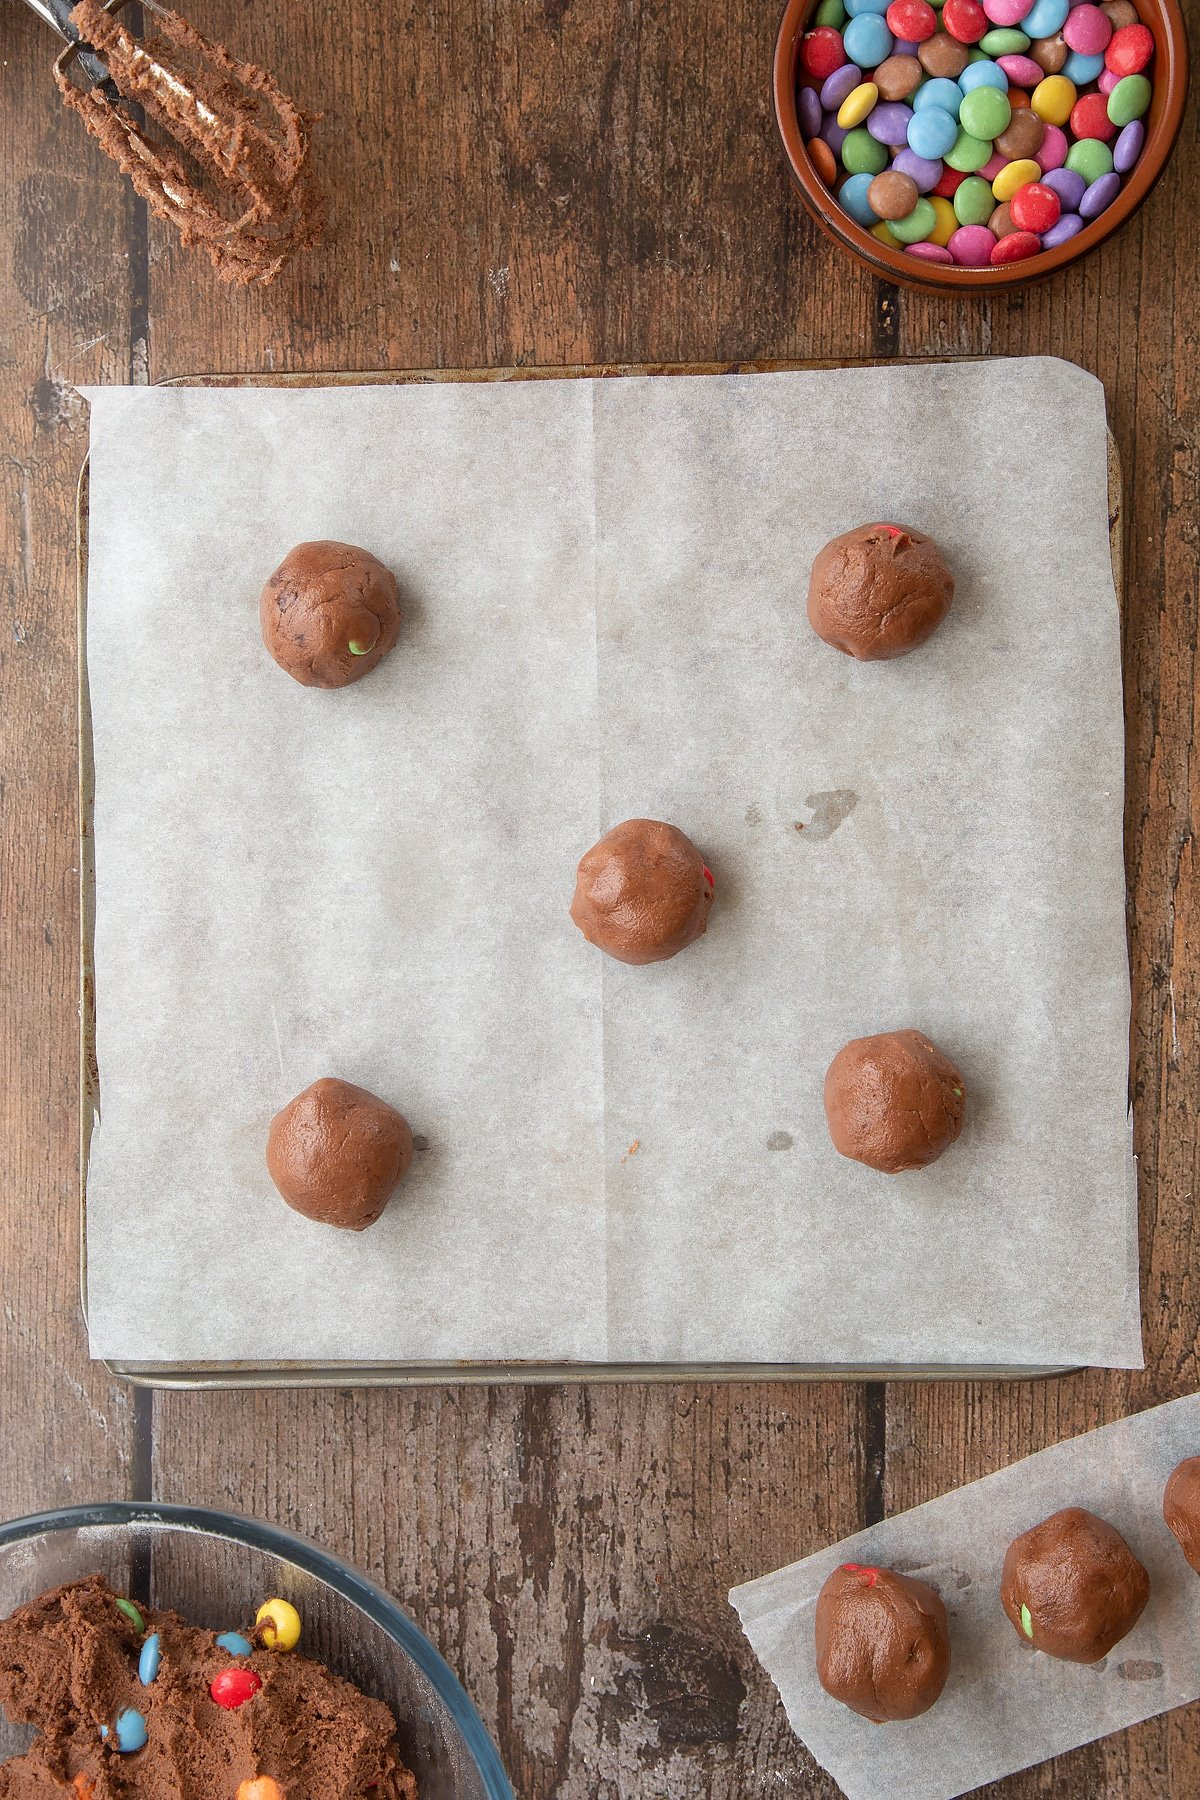 Balls of Smartie cookie dough on a  baking tray lined with baking paper. Ingredients to make the Smartie cookie recipe surround the tray.